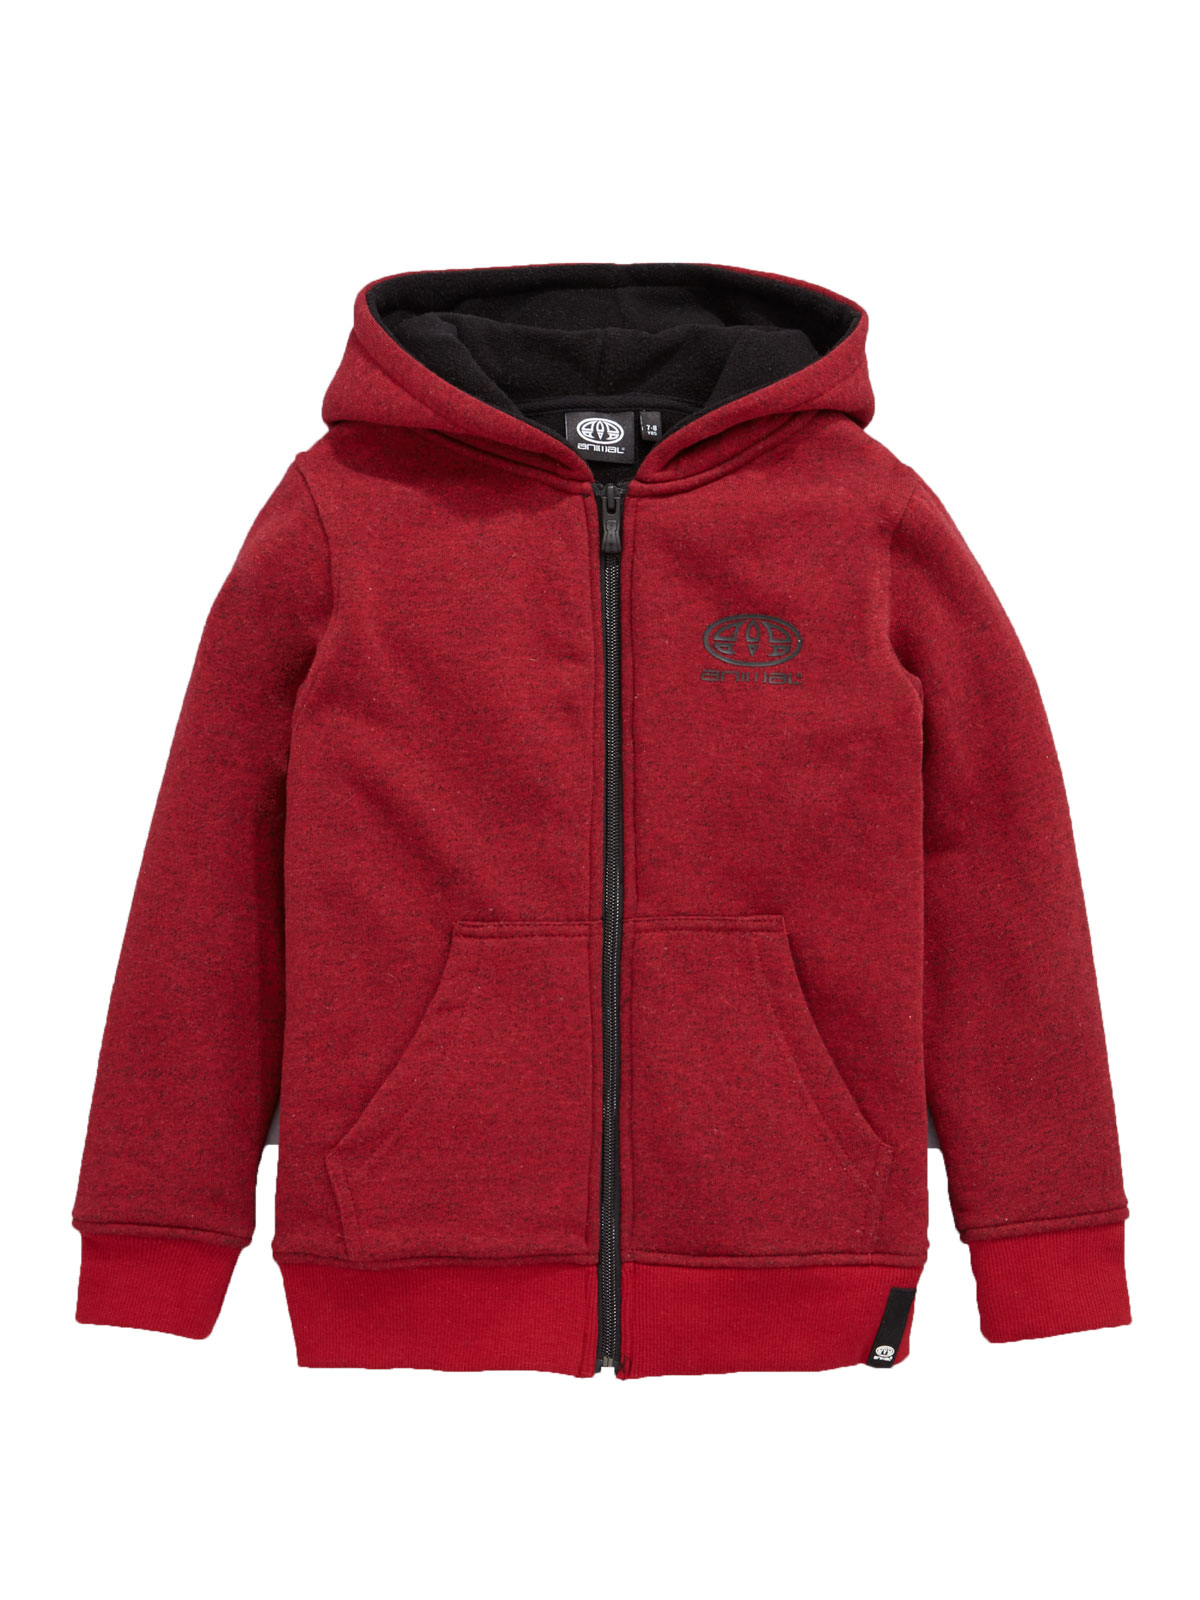 Animal Bonded Fleece Hoody at Bargain Crazy, UK Catalogue